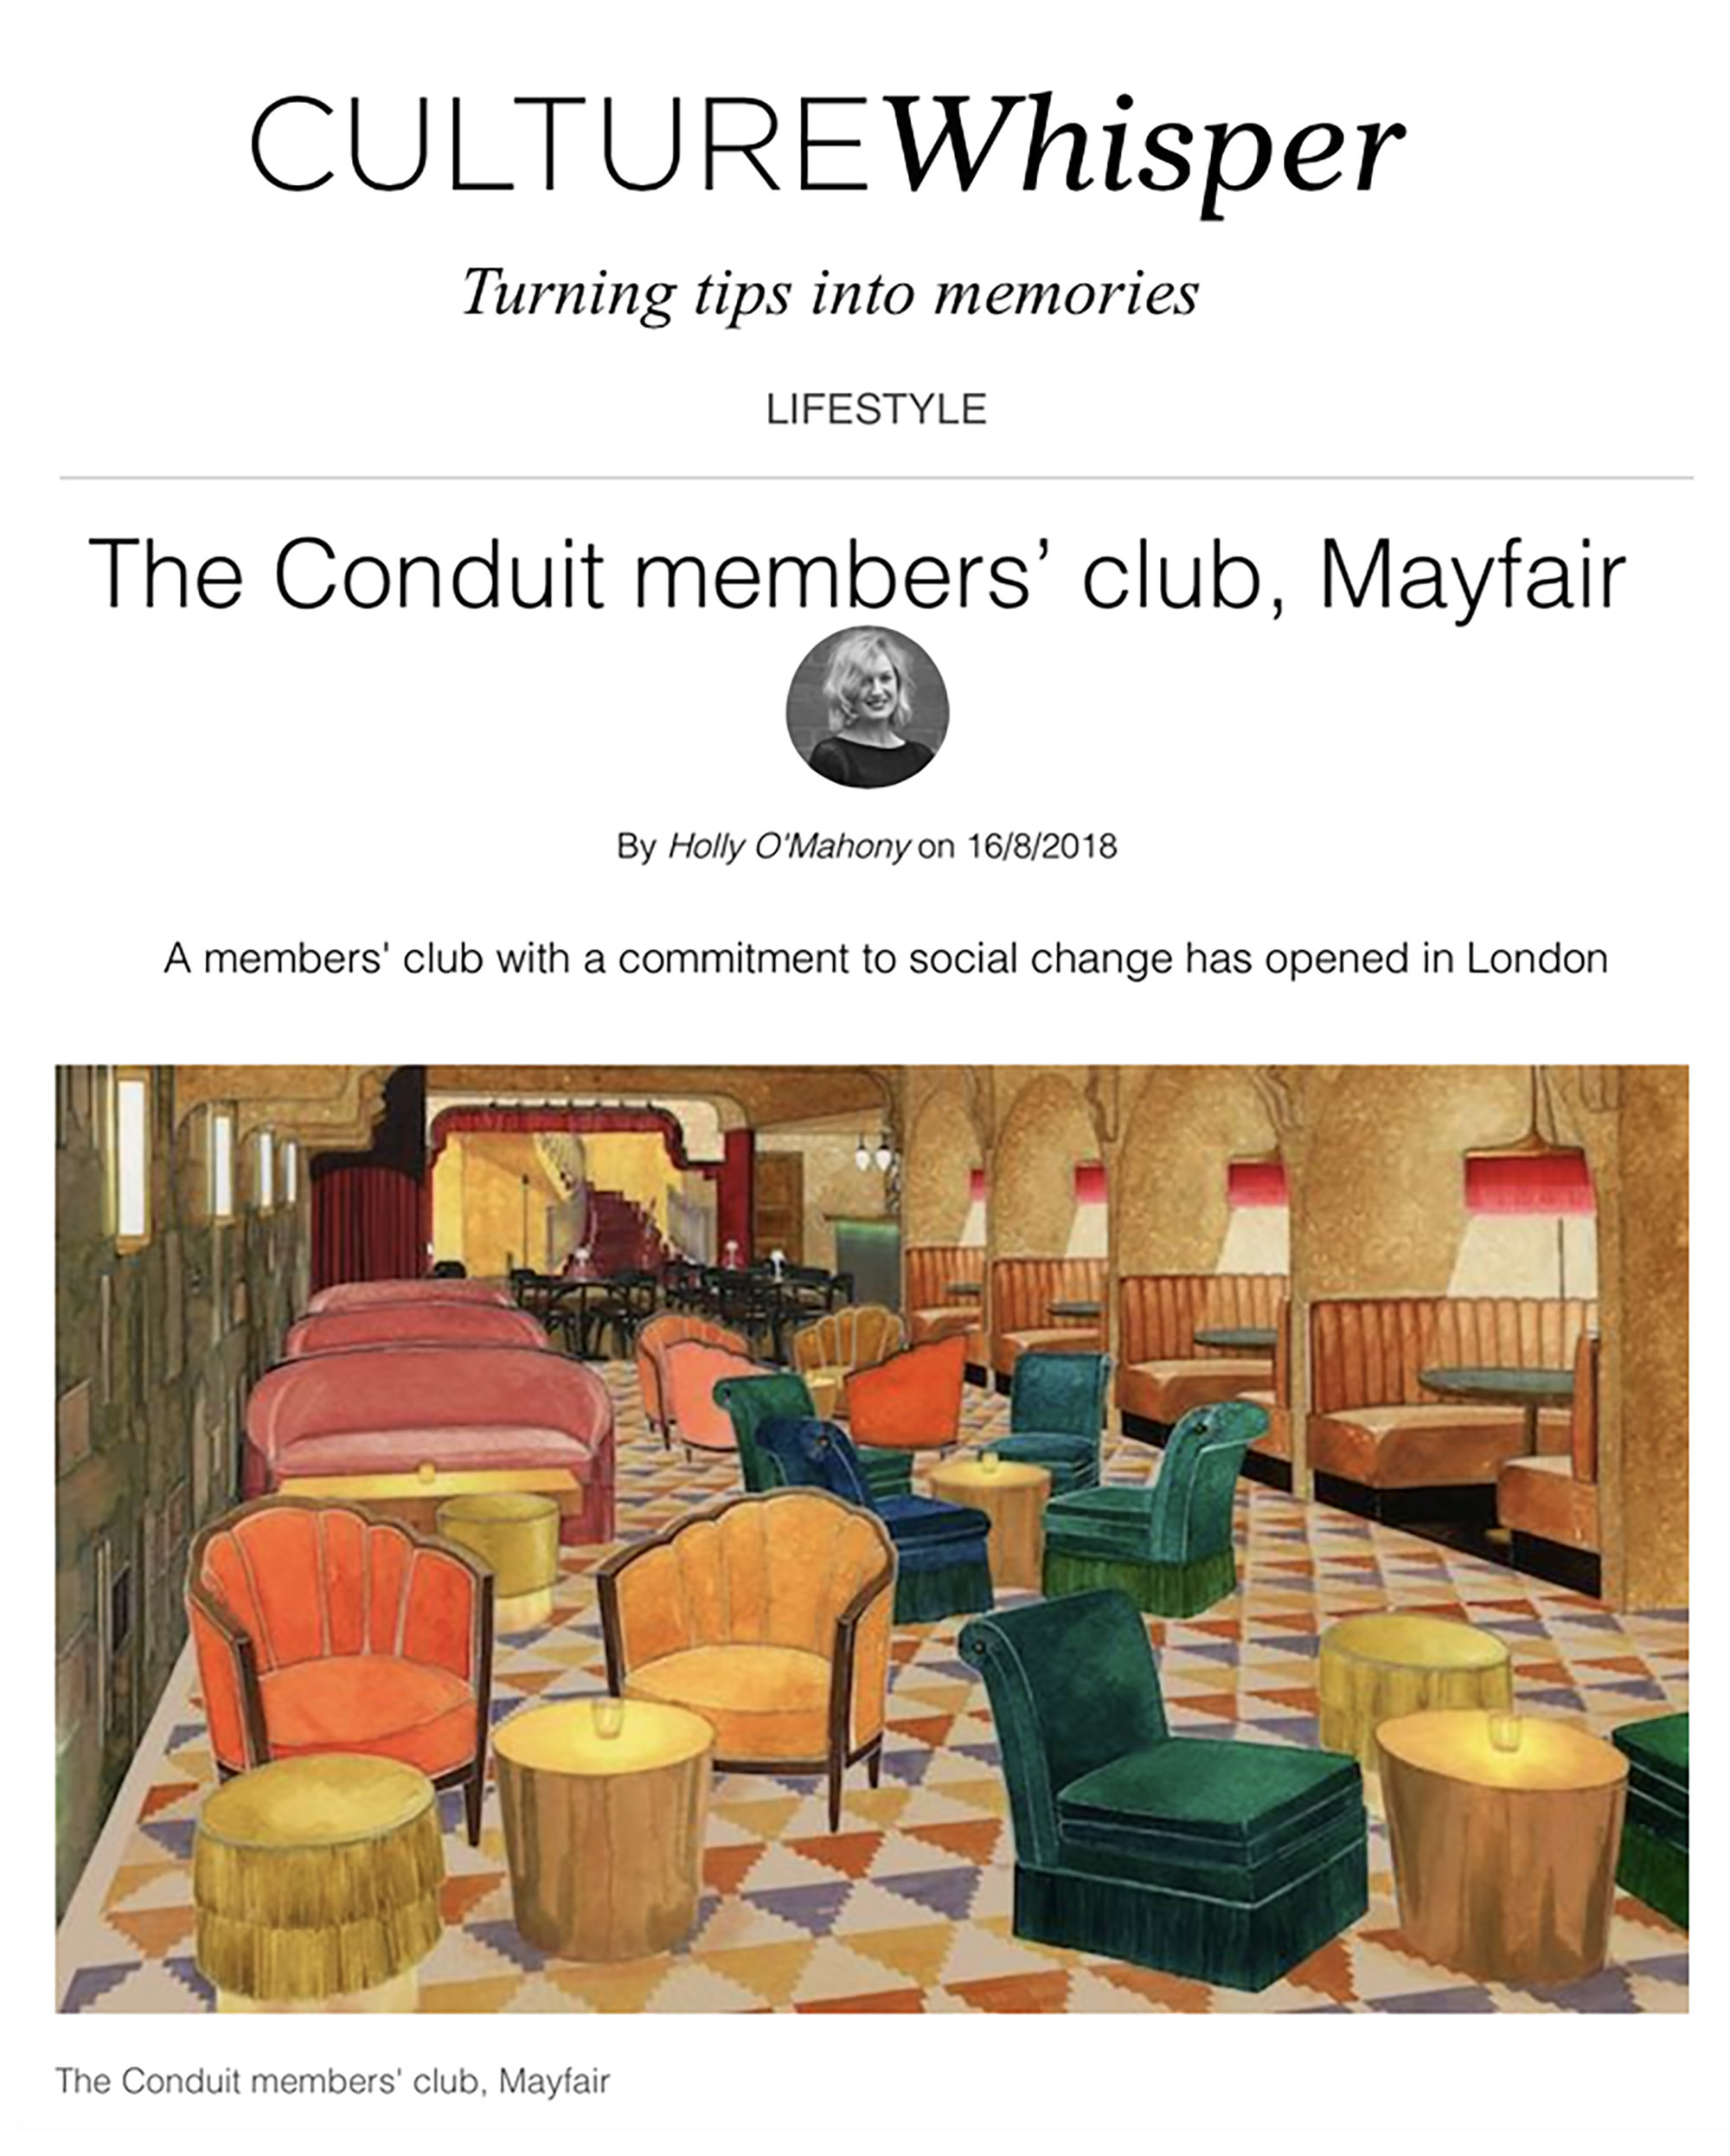 Culture Whisper: The Conduit a members' club with a commitment to social change